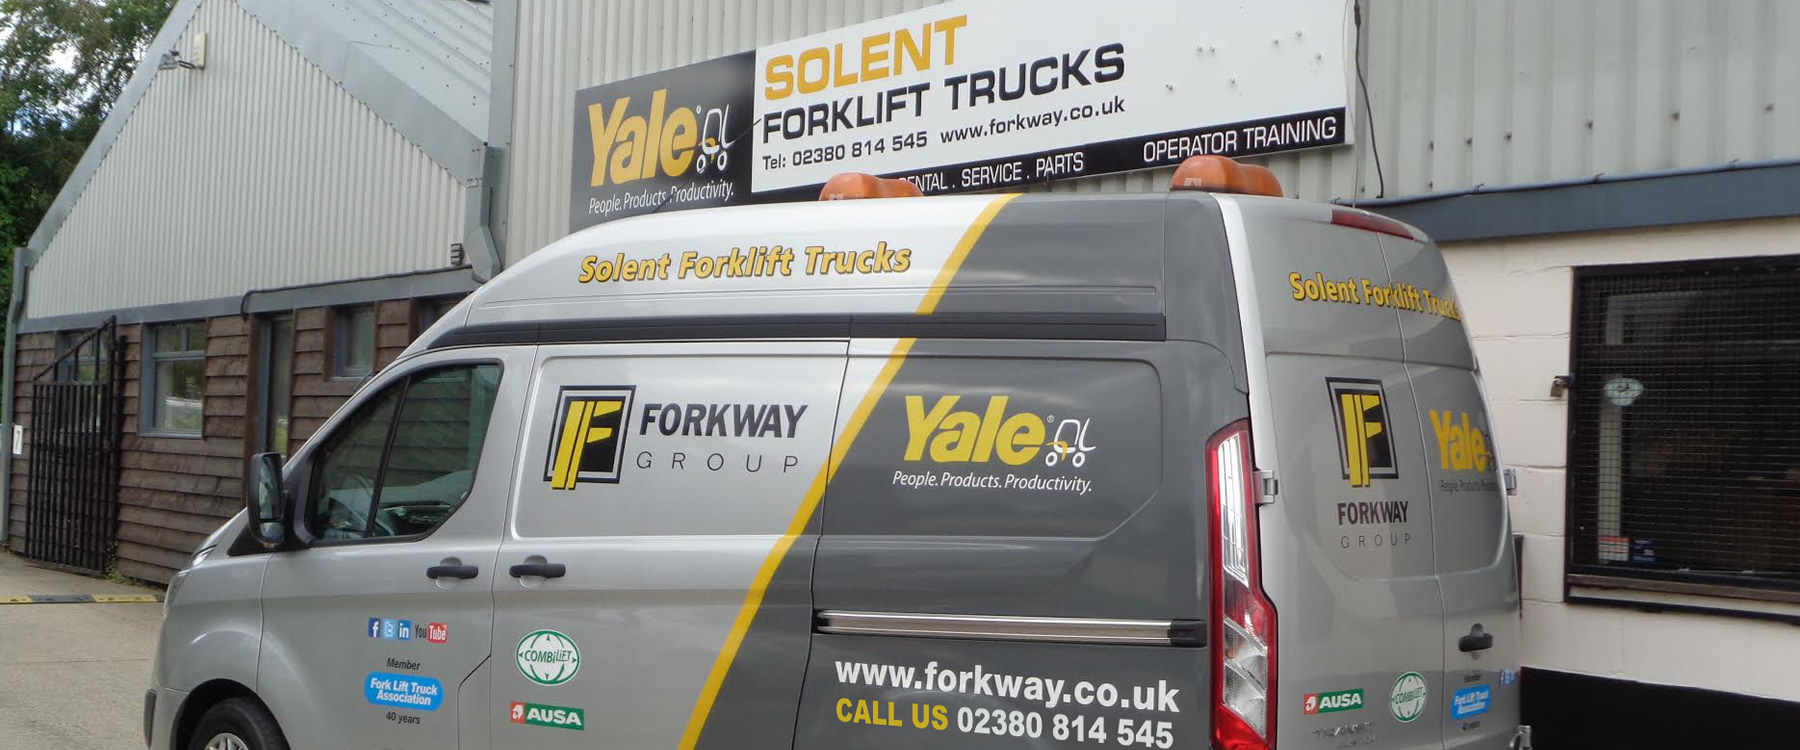 Yale Forklifts and Warehousing Equipment